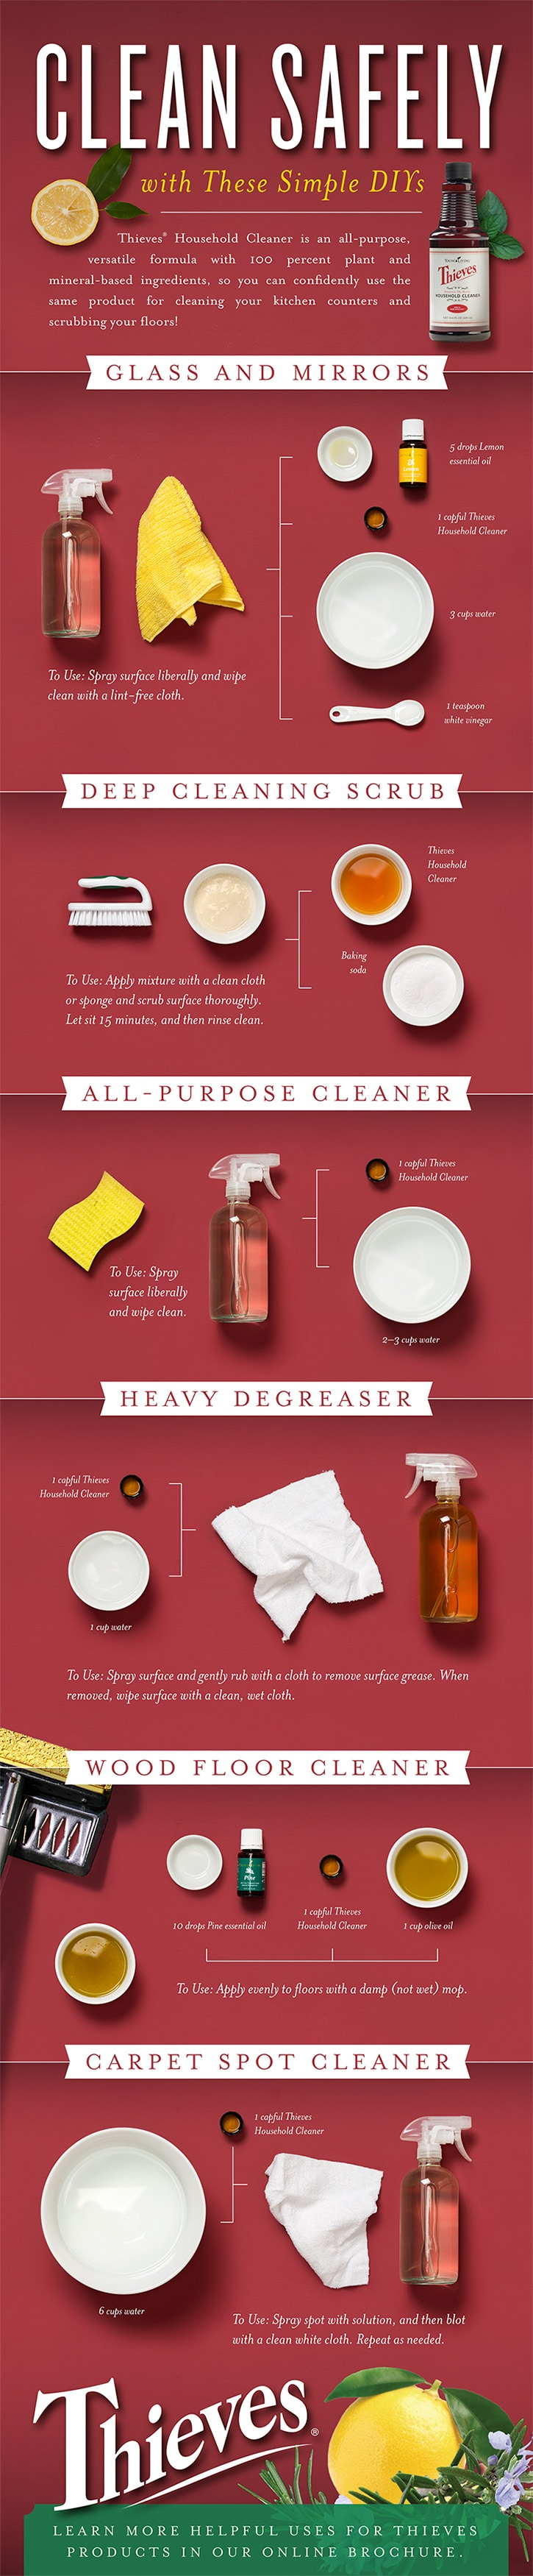 everyday-oils-thieves-clean-safely